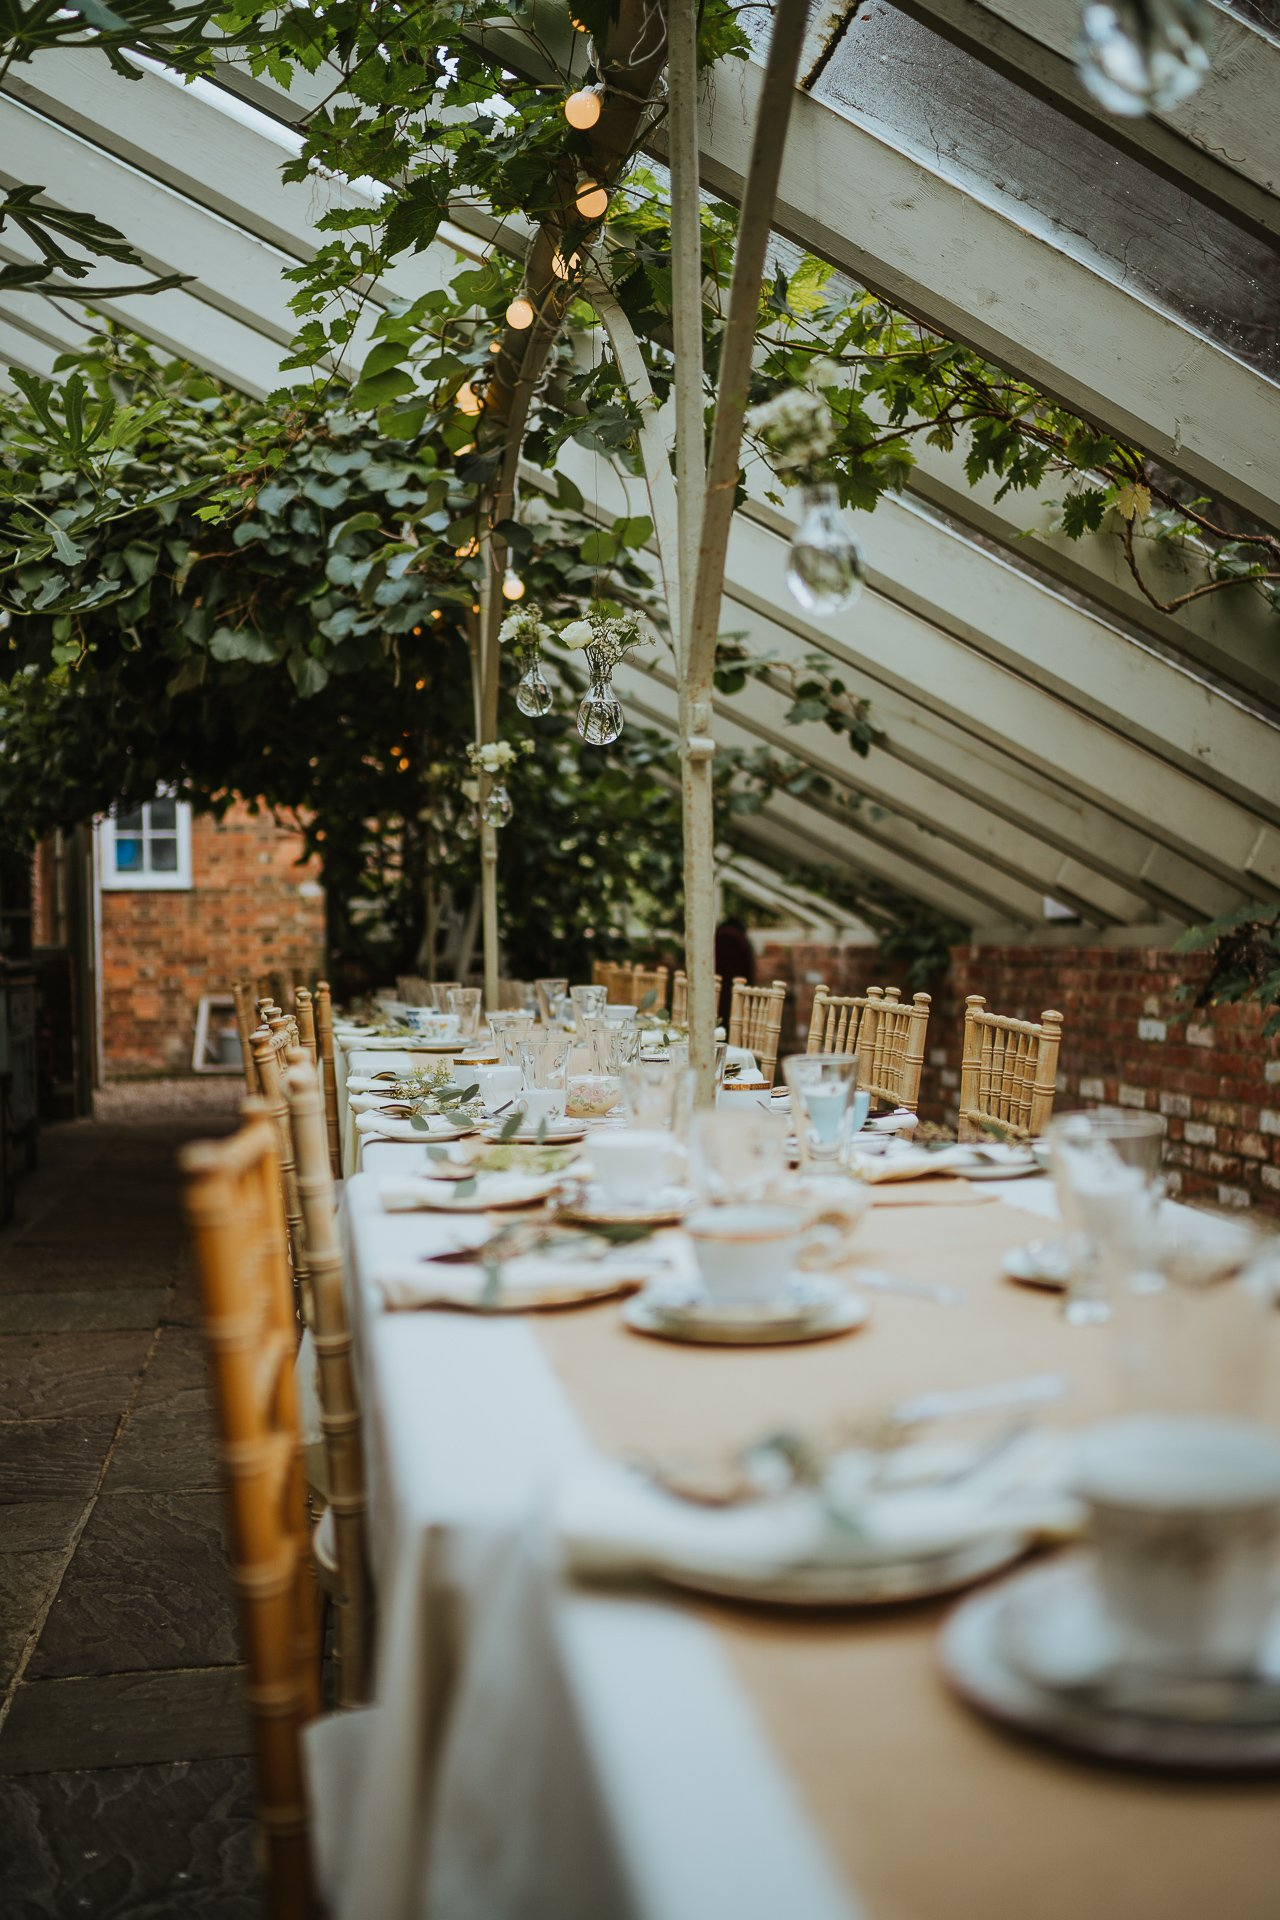 The Glasshouse at The Secret Garden dressed for a wedding